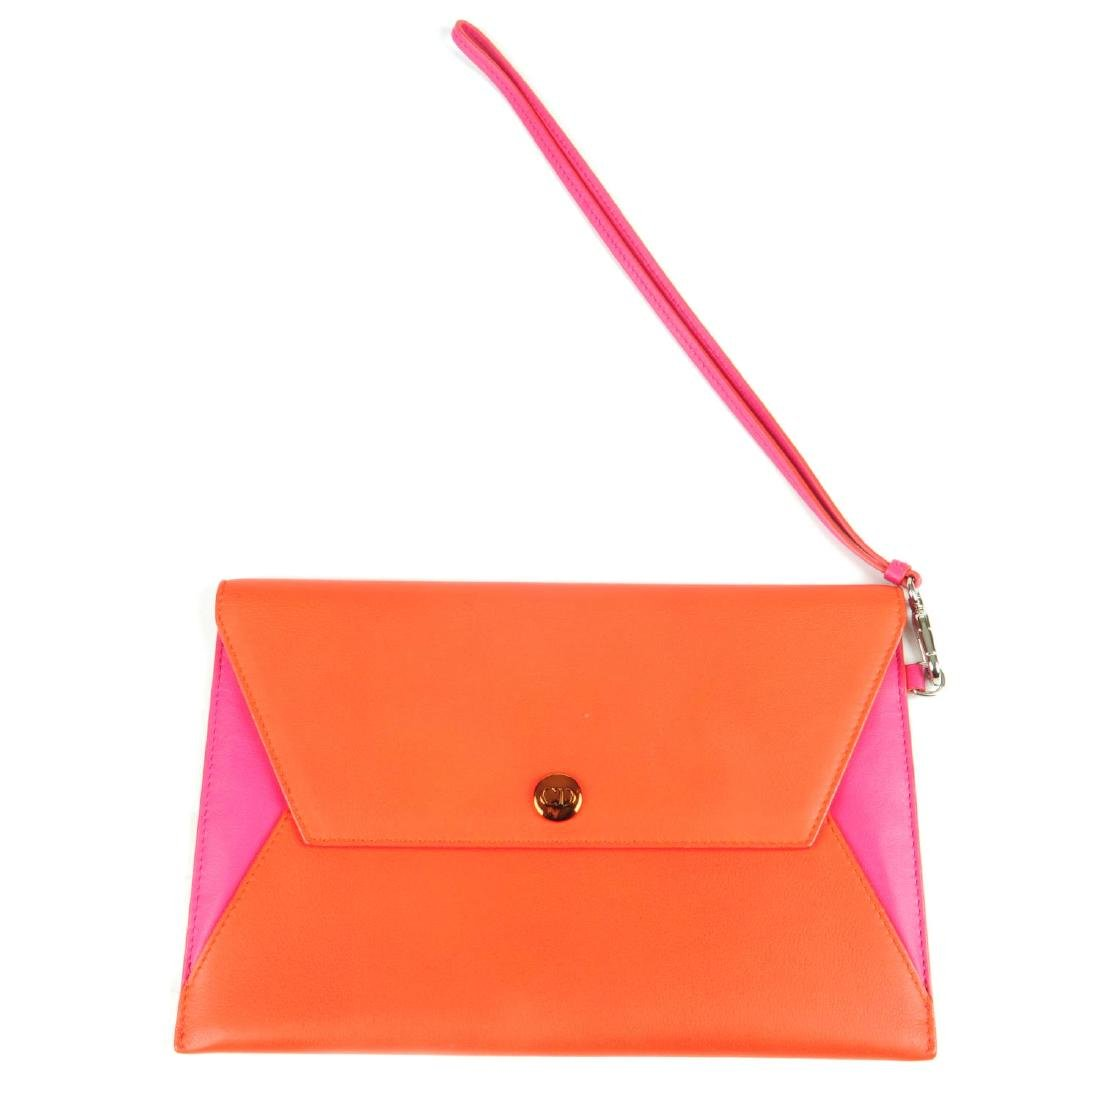 CHRISTIAN DIOR - a leather envelope clutch. Crafted